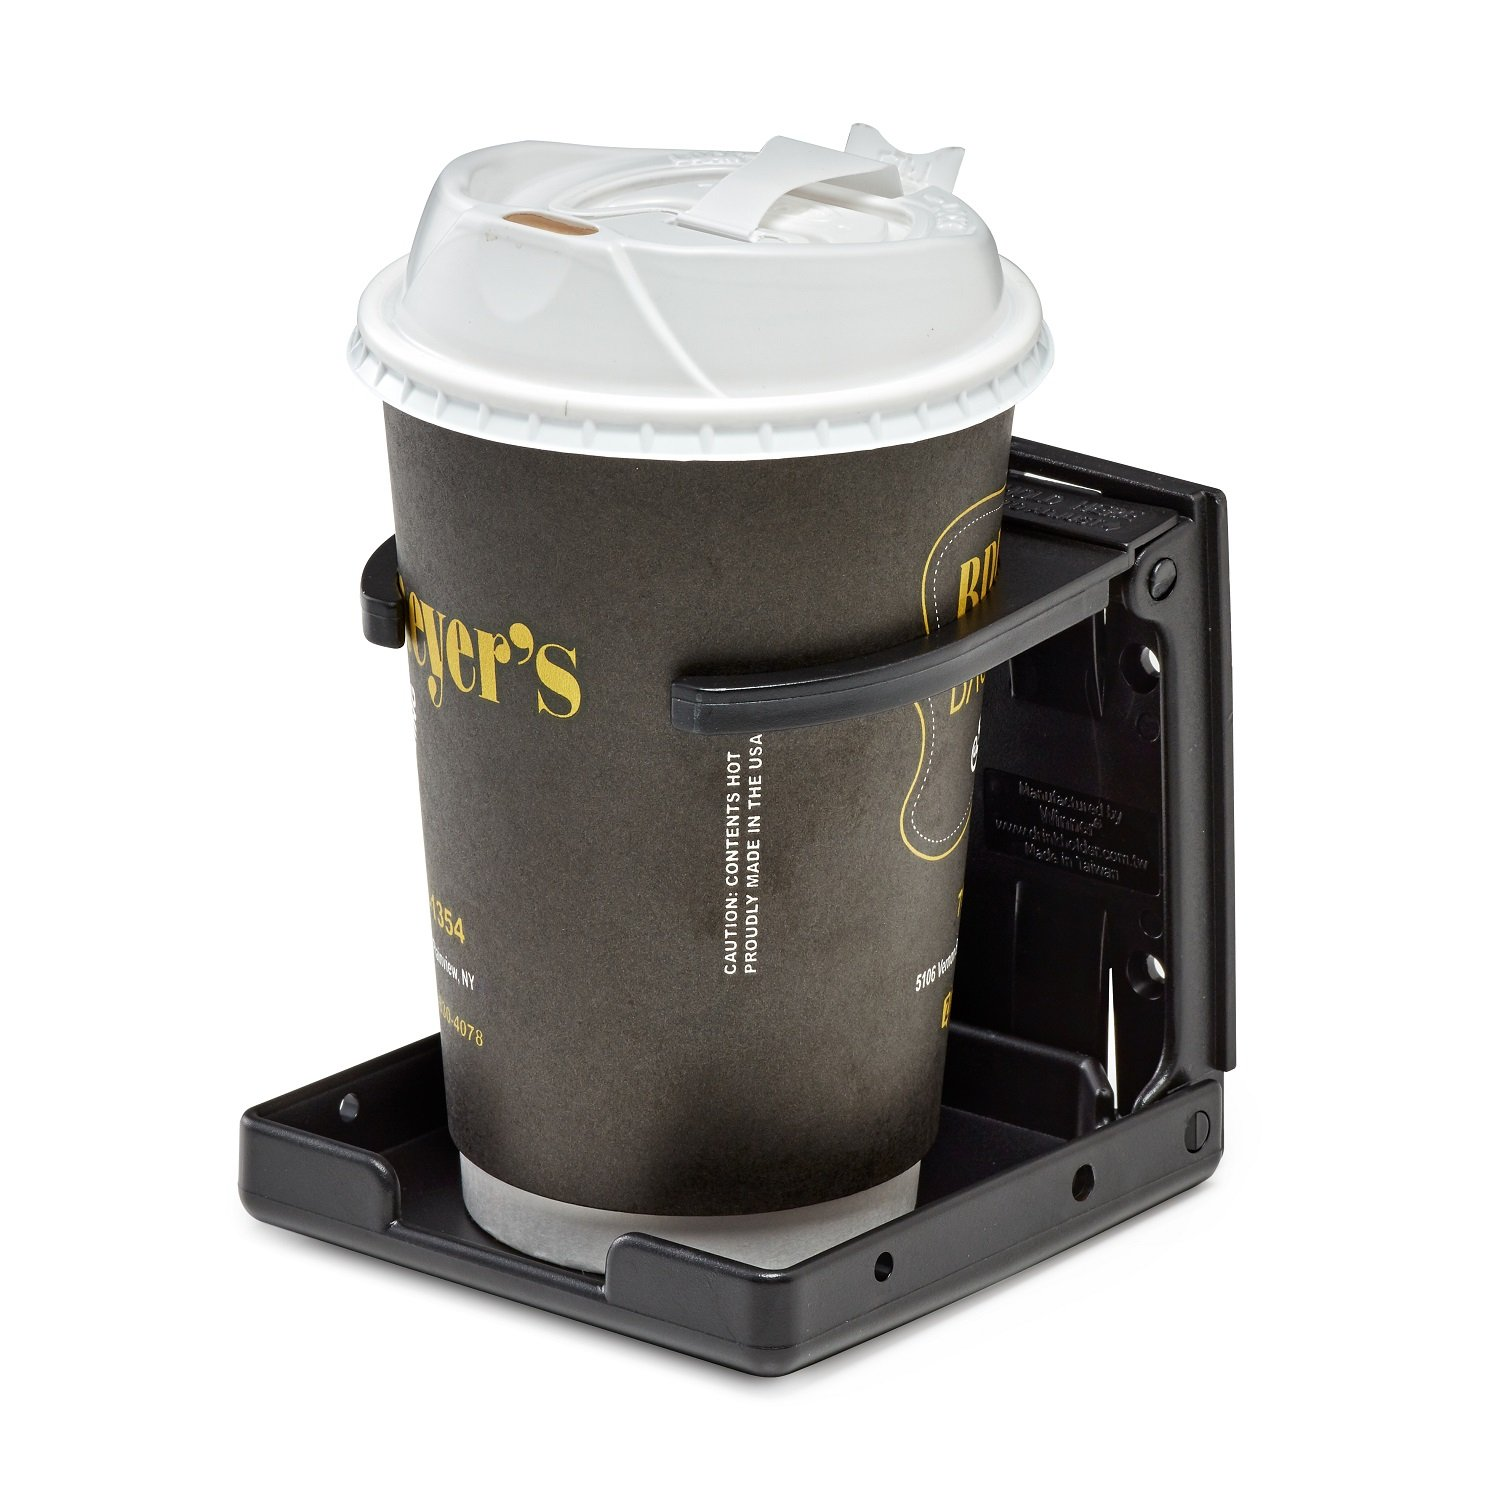 AdirMed Universal Drinking Cup Holder - For Any Kind Of Strollers, Walkers, Bicycles, Wheelchairs, Rollator, Cane & Crutch (Black)